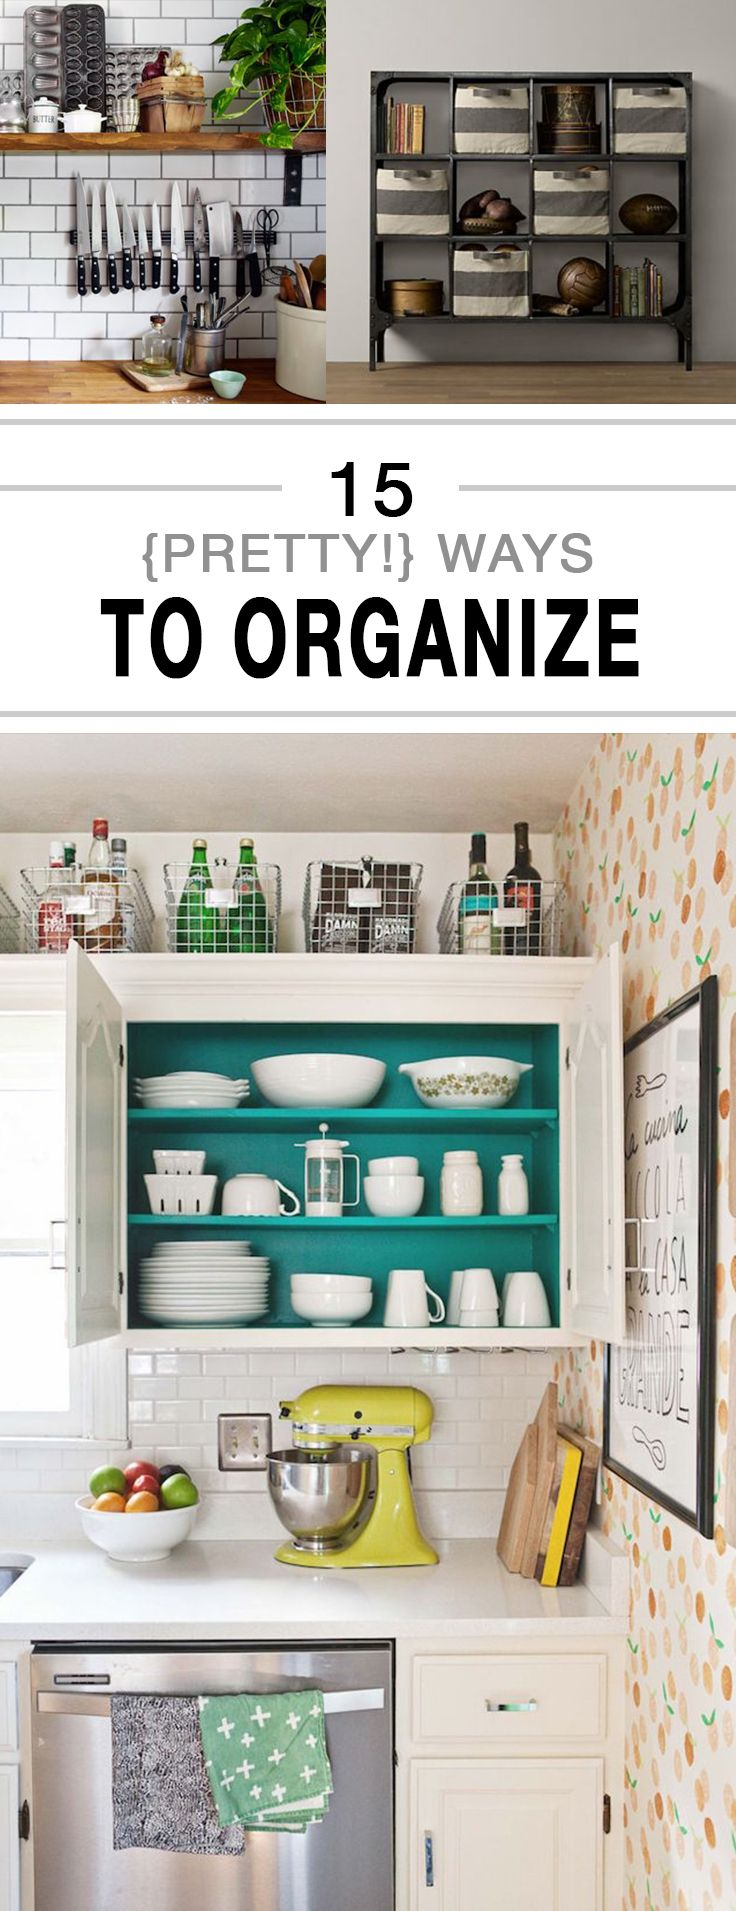 Organization, organization hacks, pretty ways to organize, pretty organization, popular pin, interior design hacks, home decor ideas, organization inspiration.